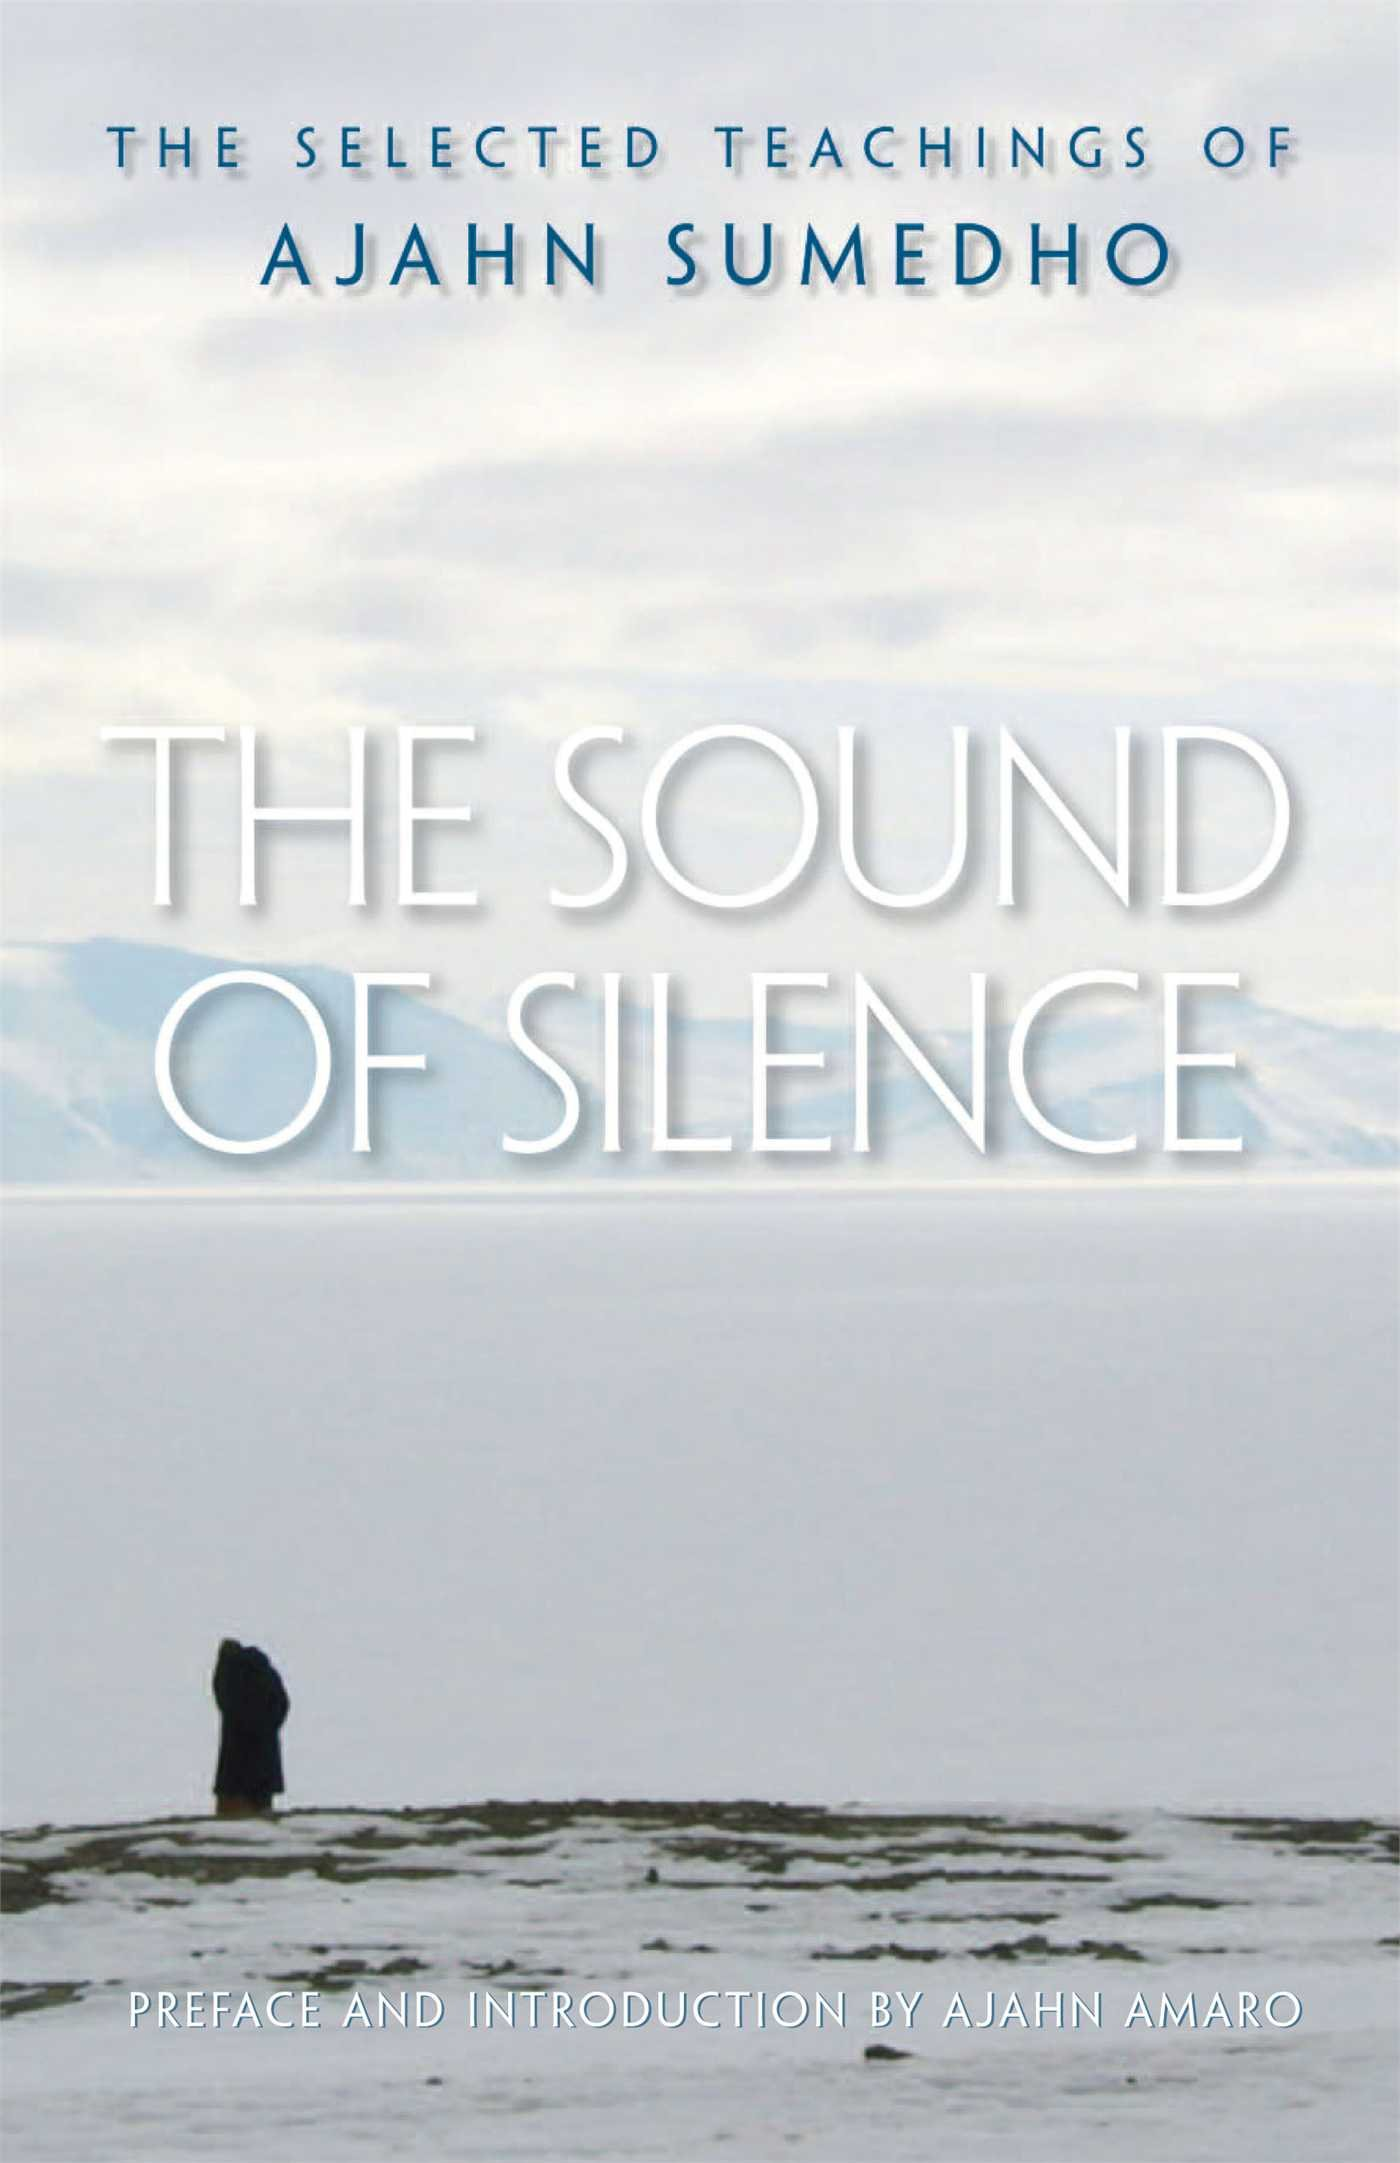 Amazon: The Sound Of Silence: The Selected Teachings Of Ajahn Sumedho  (9780861715152): Ajahn Sumedho, Samanera Amaranatho, Ajahn Amaro: Books